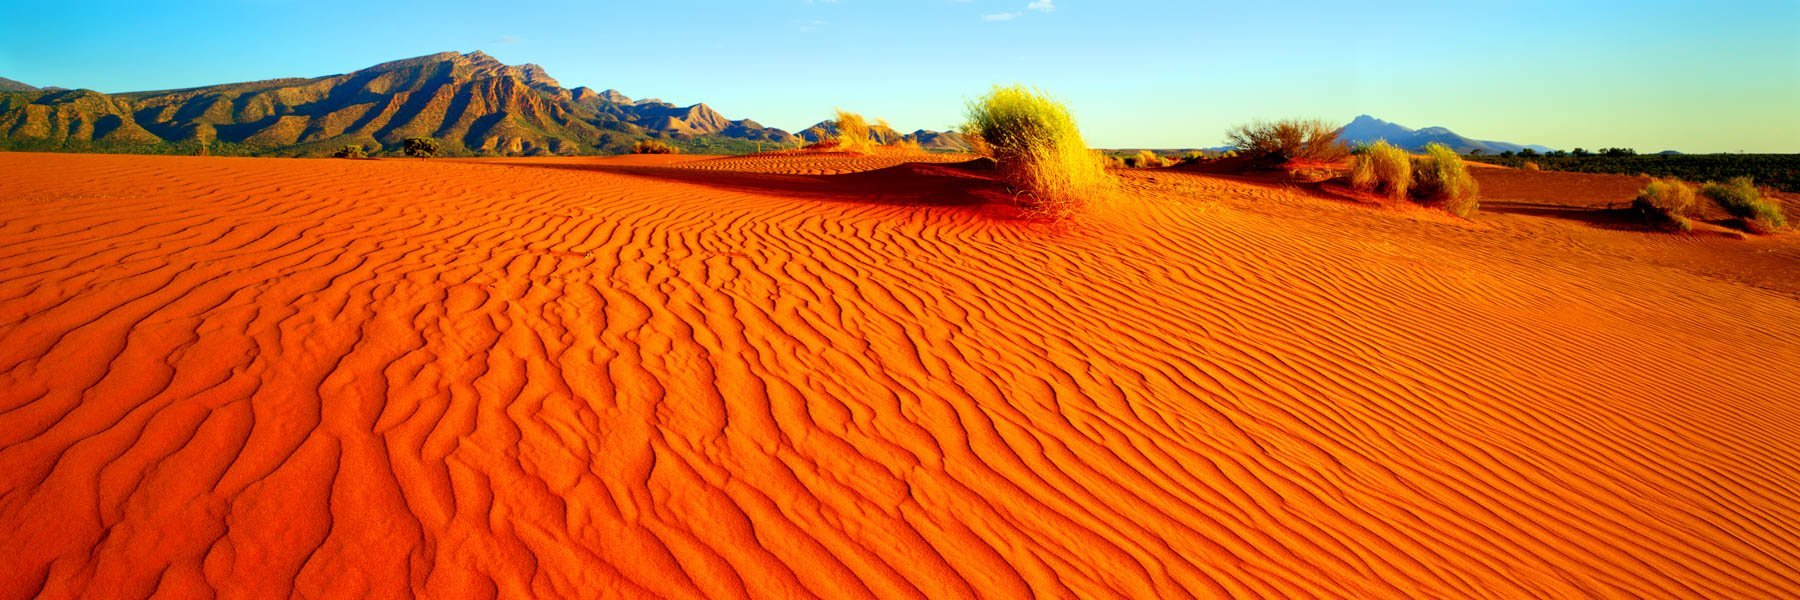 Wind-etched patters in bright red sand dunes, Flinders Ranges, SA, Australia.